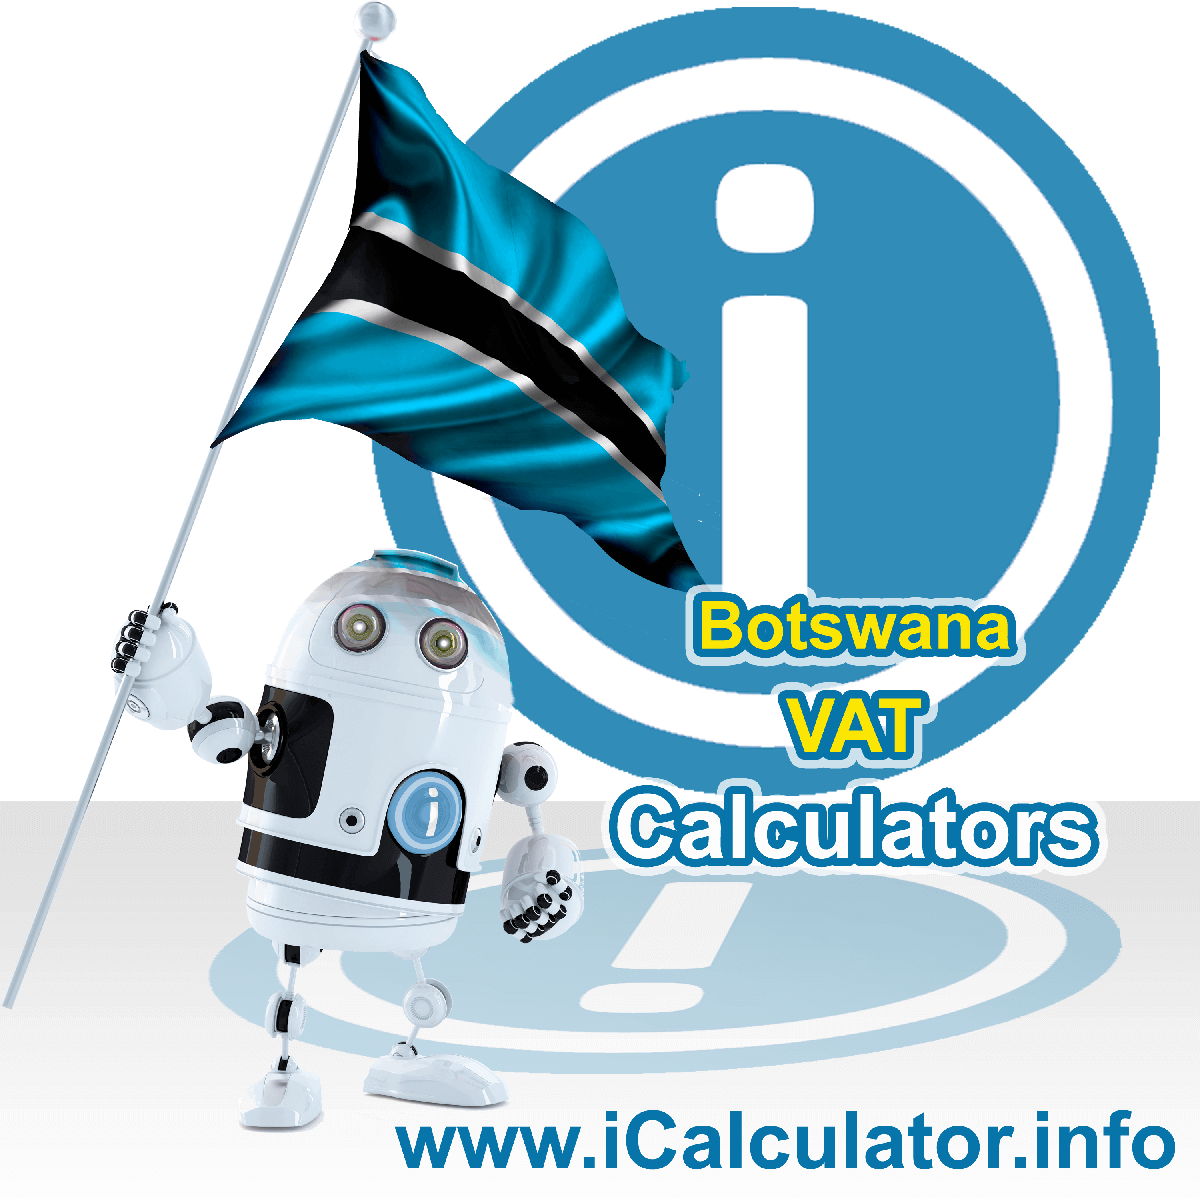 Botswana VAT Calculator. This image shows the Botswana flag and information relating to the VAT formula used for calculating Value Added Tax in Botswana using the Botswana VAT Calculator in 2020